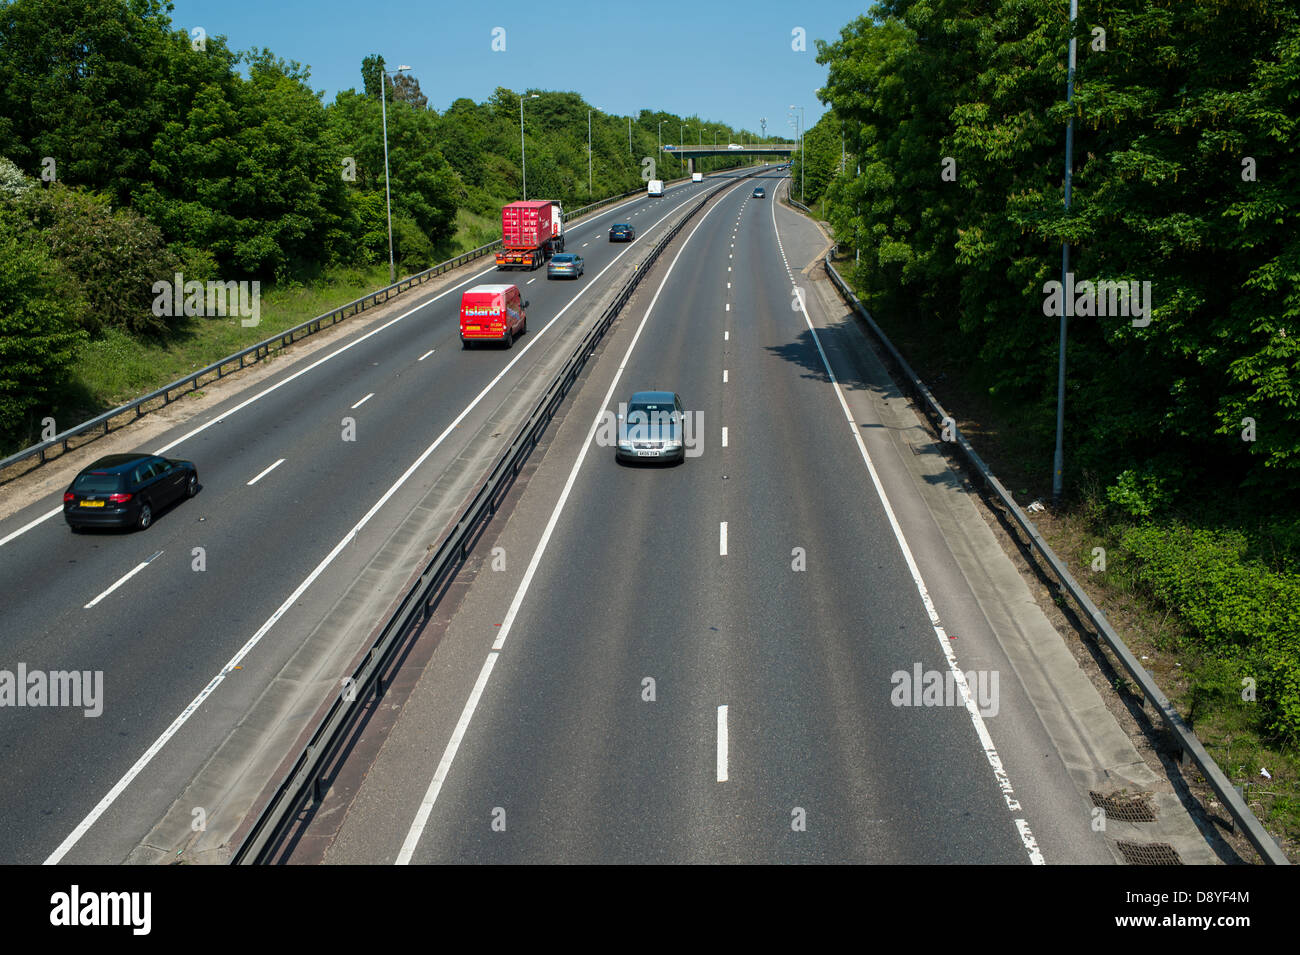 A12 Essex, UK. Vehicles using the outside lane on dual carriageway when no traffic is in nearside lane. - Stock Image